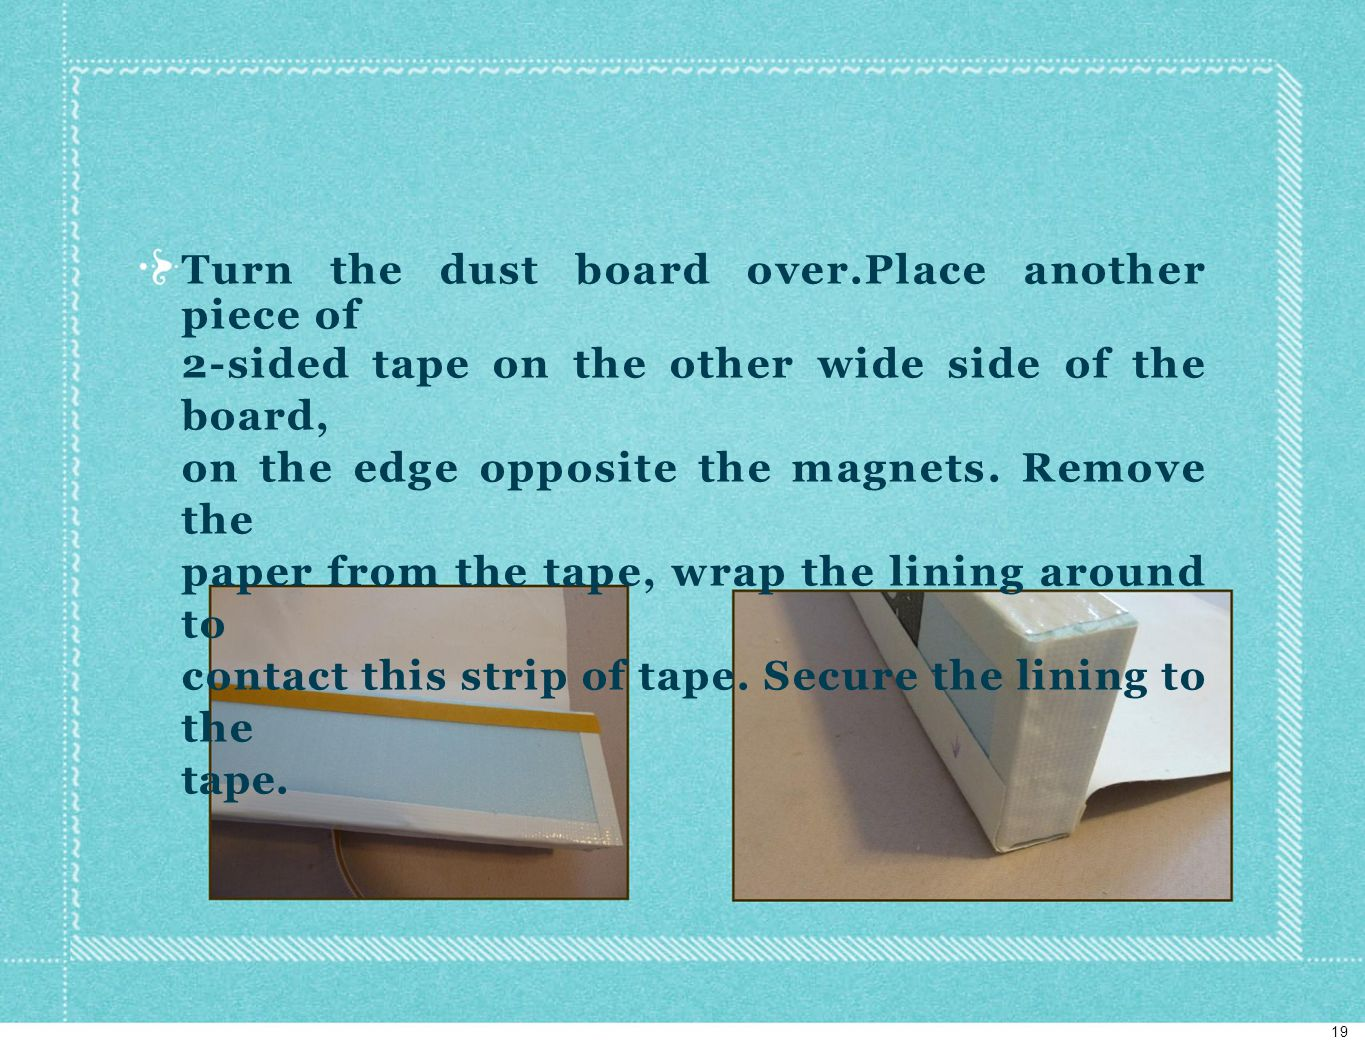 Turn the dust board over.Place another piece of 2-sided tape on the other wide side of the board, on the edge opposite the magnets.